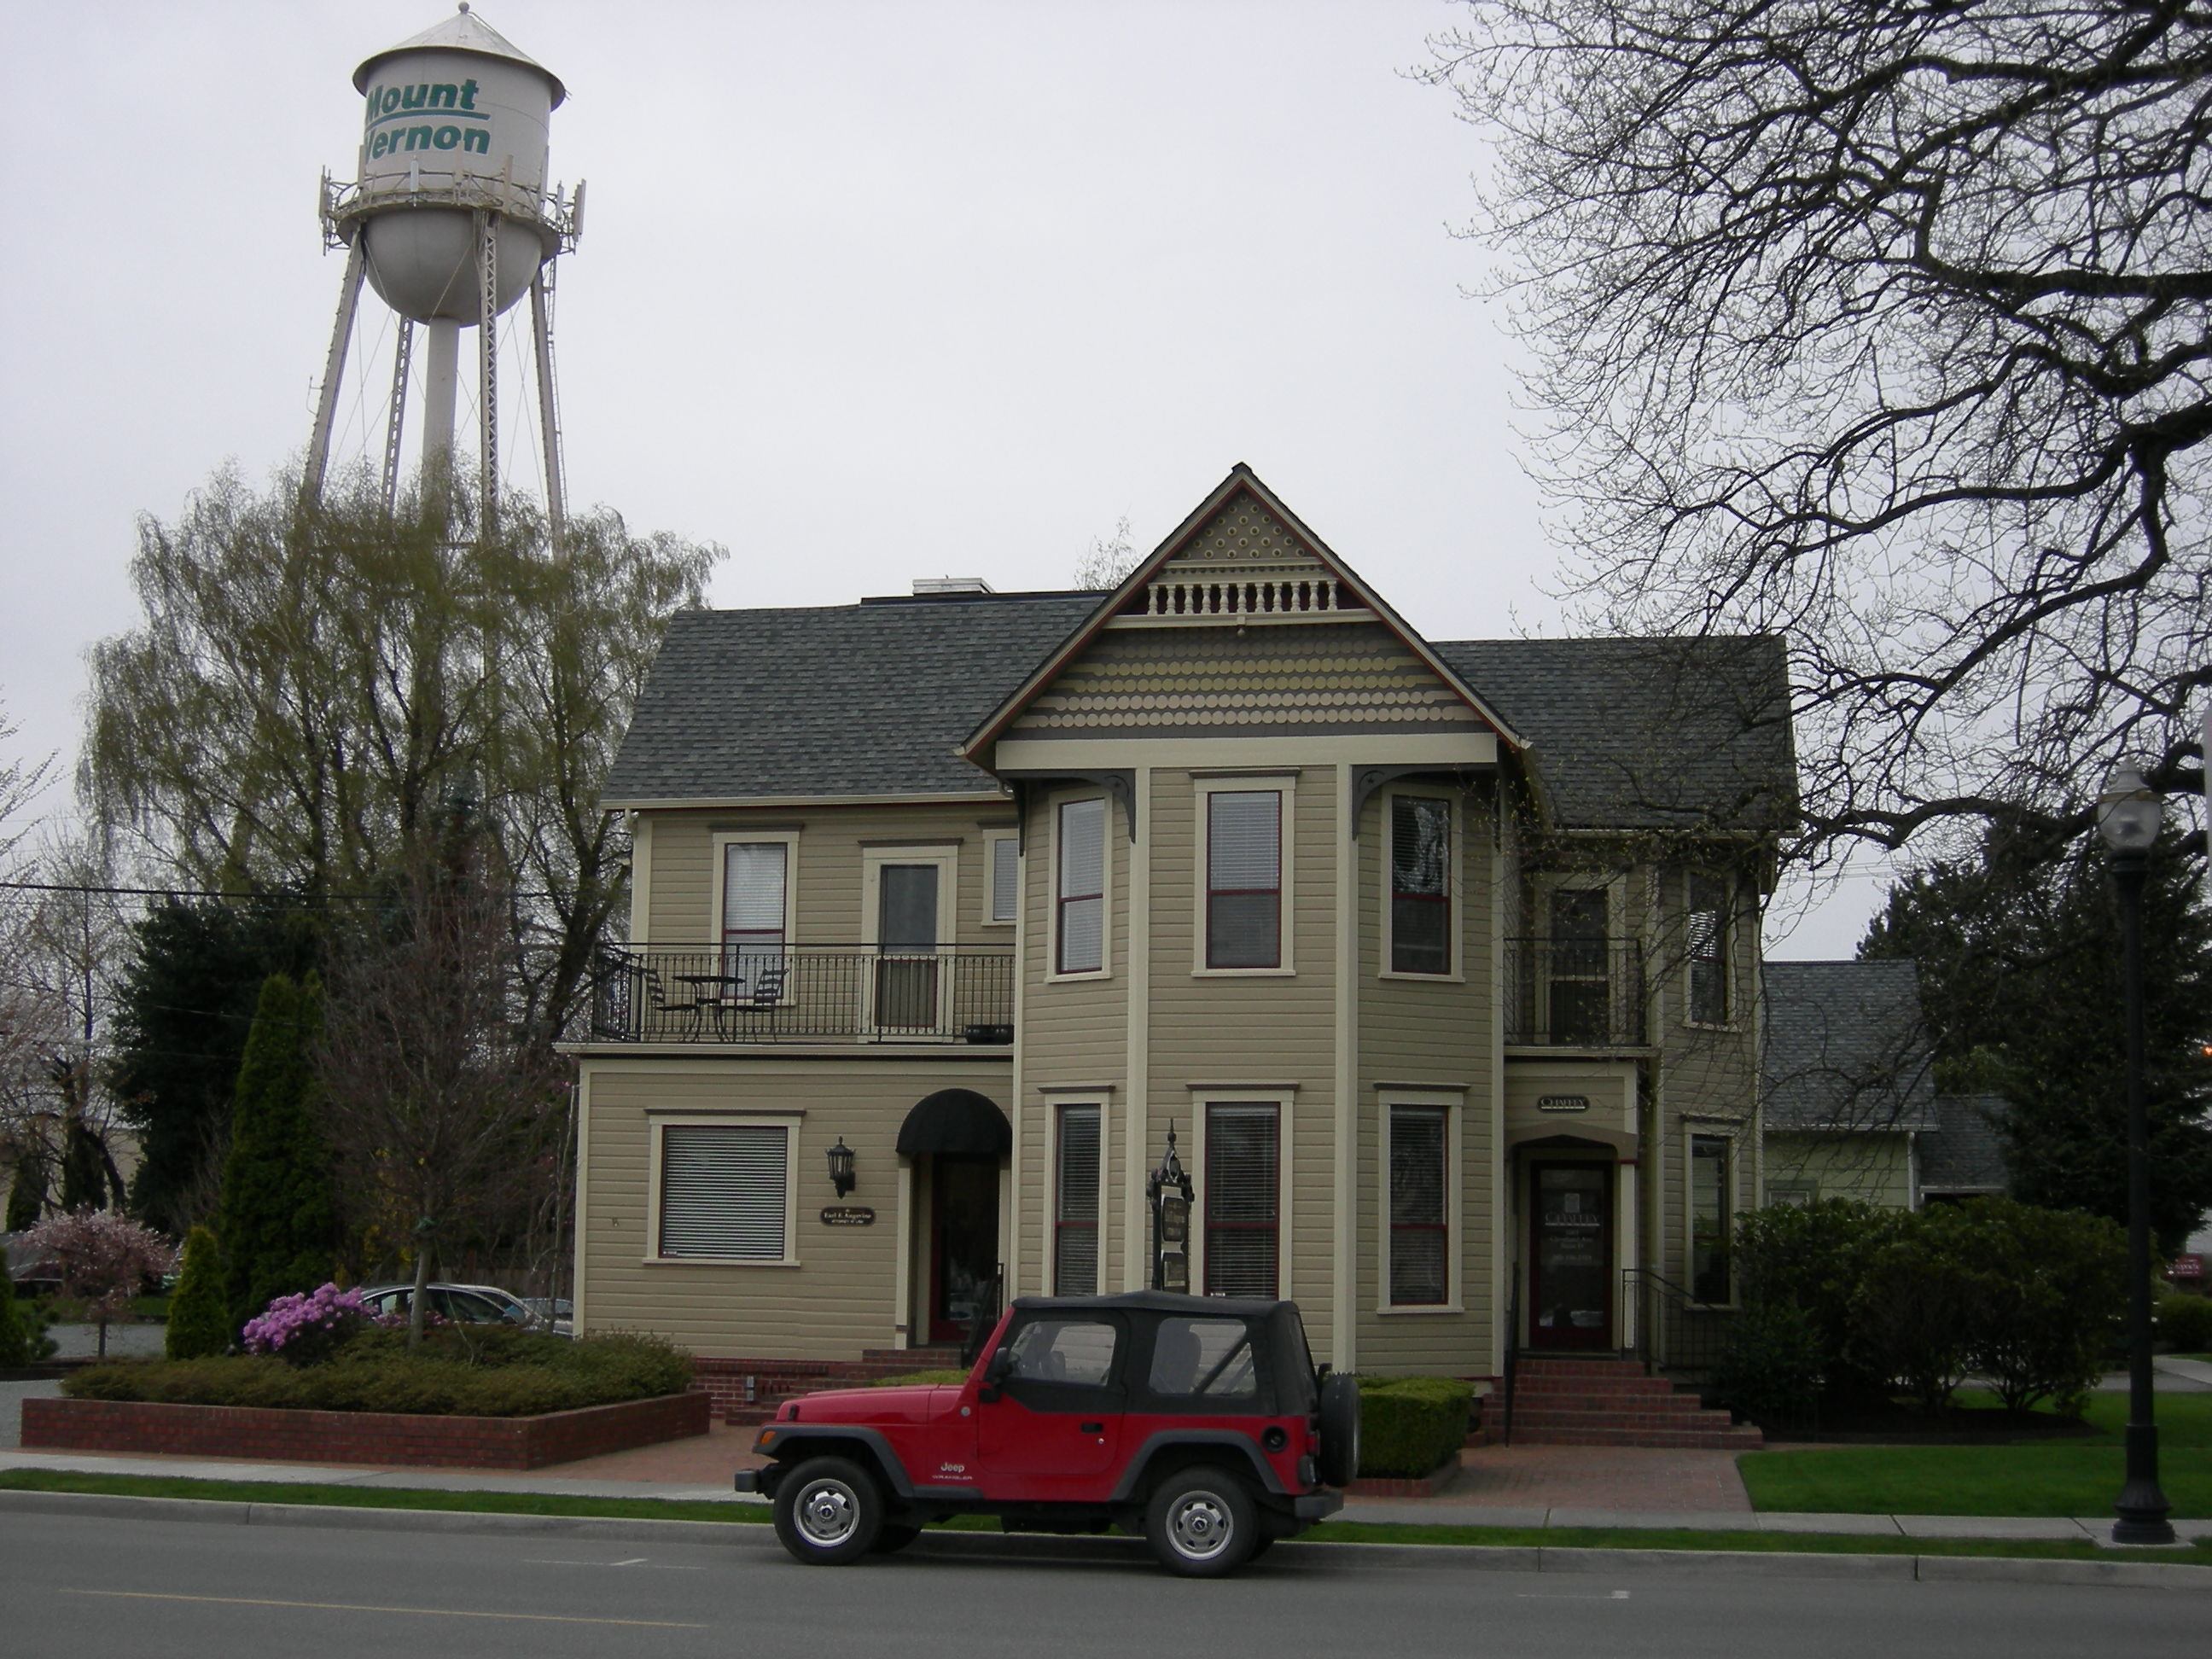 mount vernon wa dating Looking for a home in mount vernon search the latest real estate listings for sale in mount vernon and learn more about buying a home with coldwell banker.